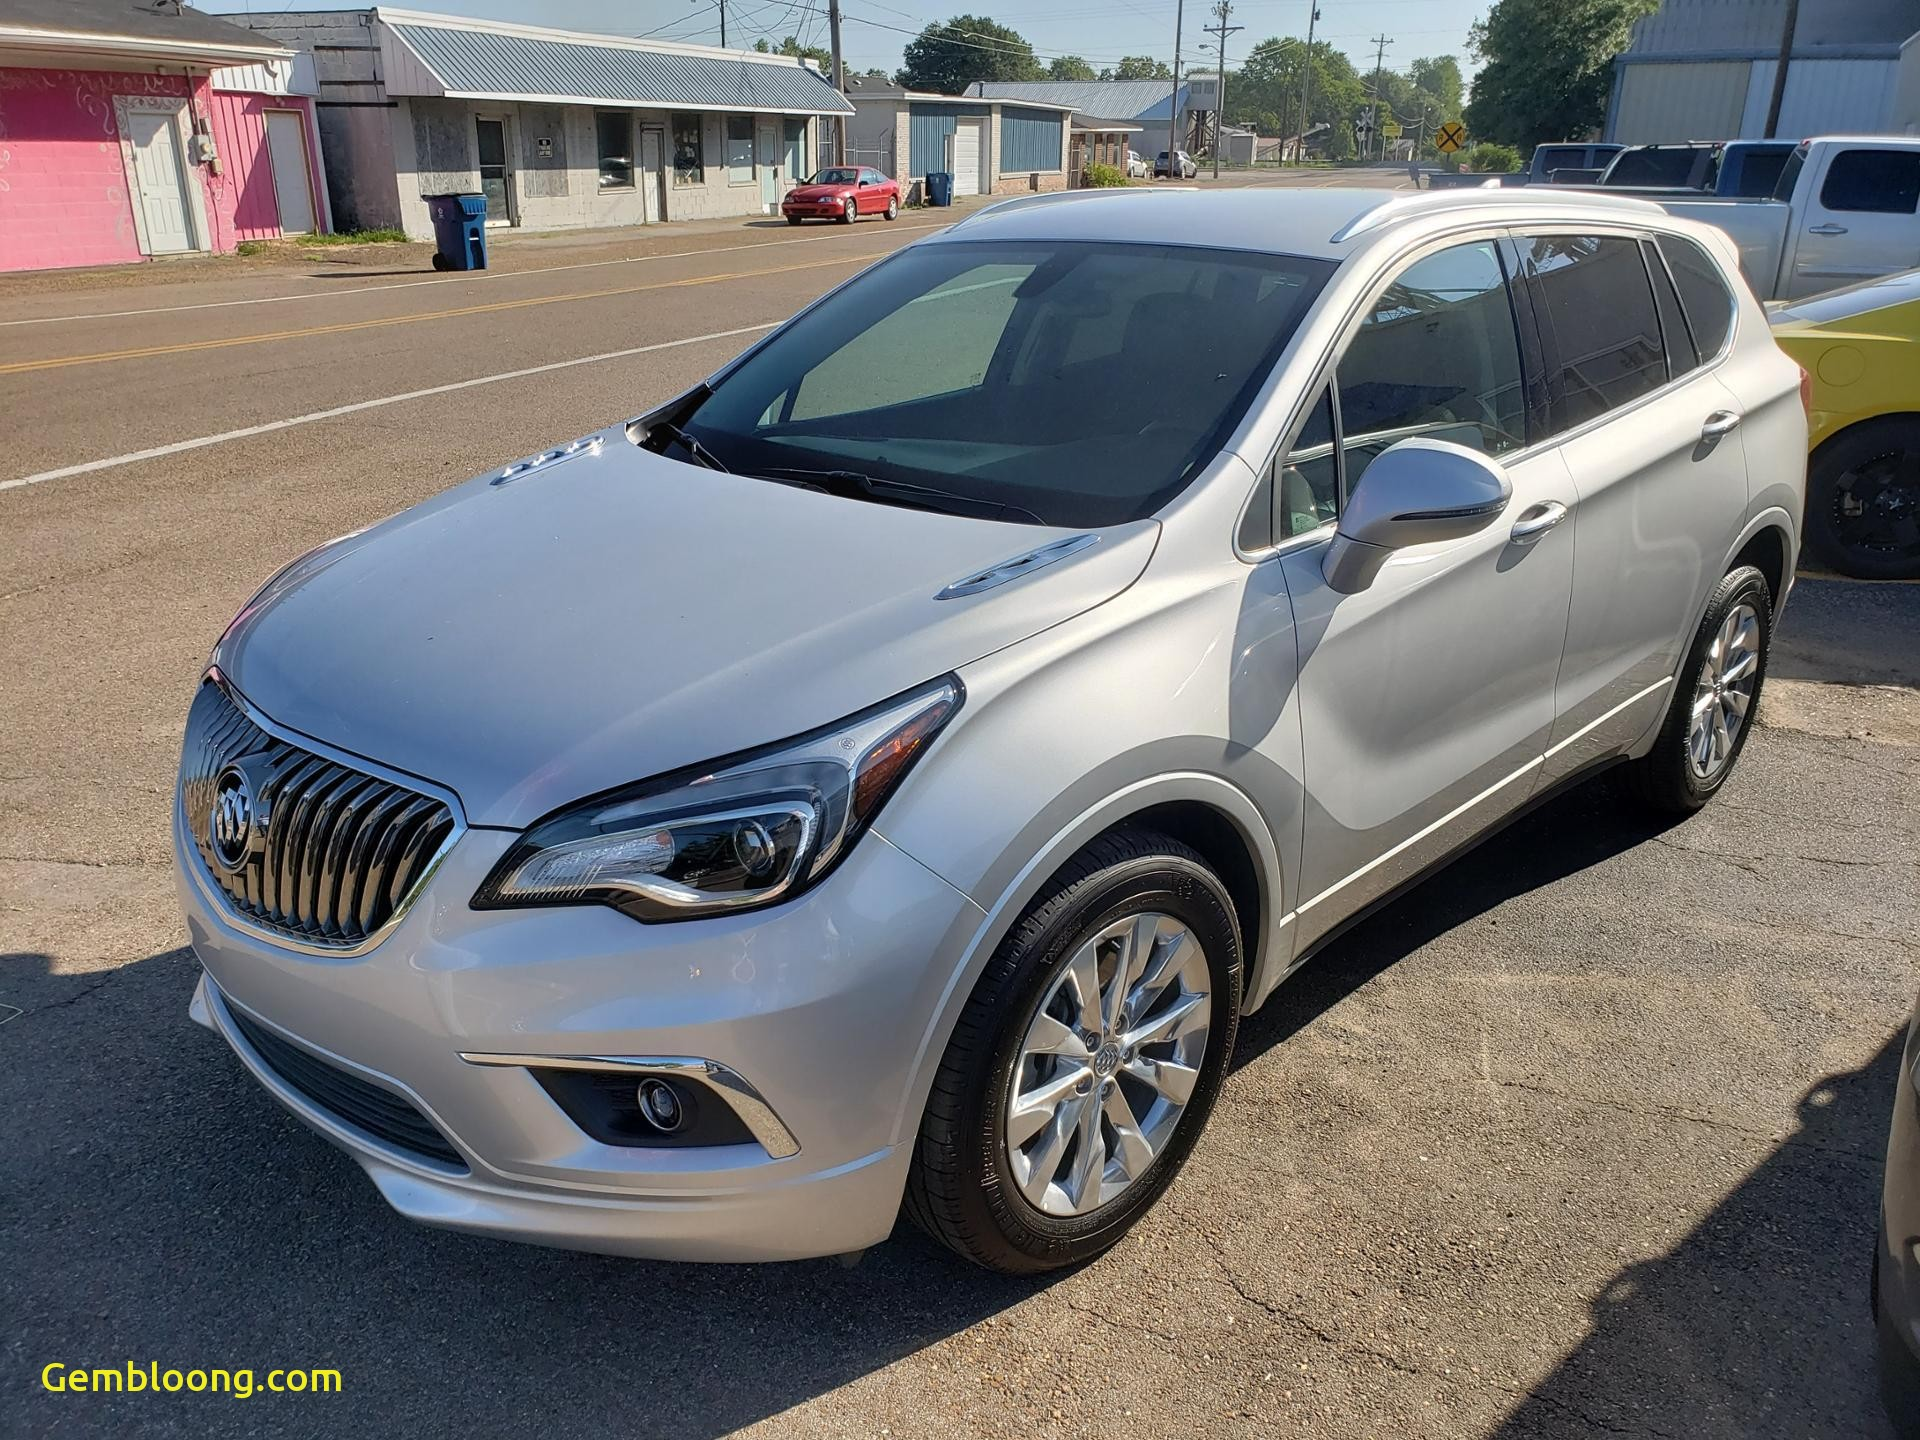 2018 buick envision vehicle in kenton tn kenton used vehicles for sale from cheap cars near me under 1500 source kentonchevy